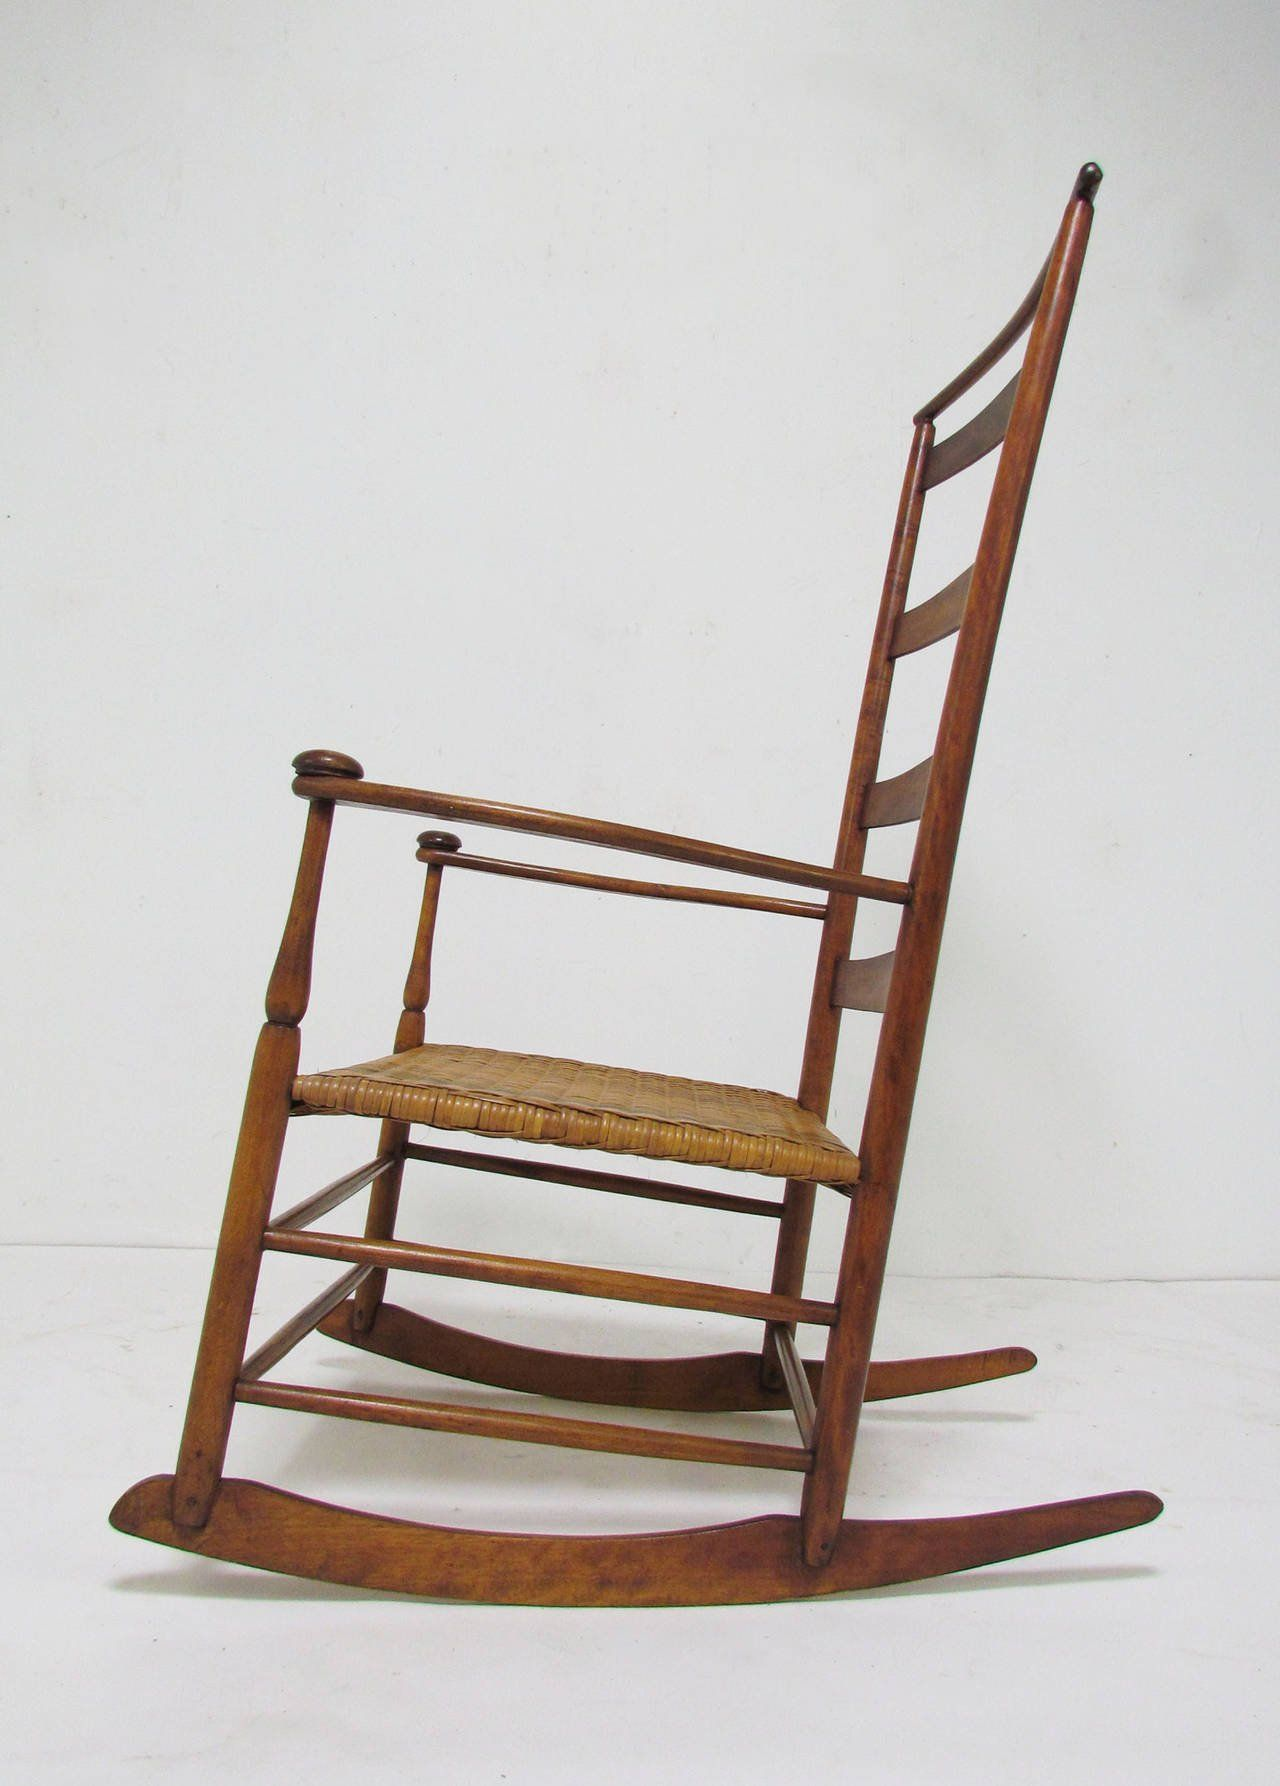 Antique Shaker No. 7 Rocking Chair with Shawl Bar 2 - Antique Shaker No. 7 Rocking Chair With Shawl Bar Shaker